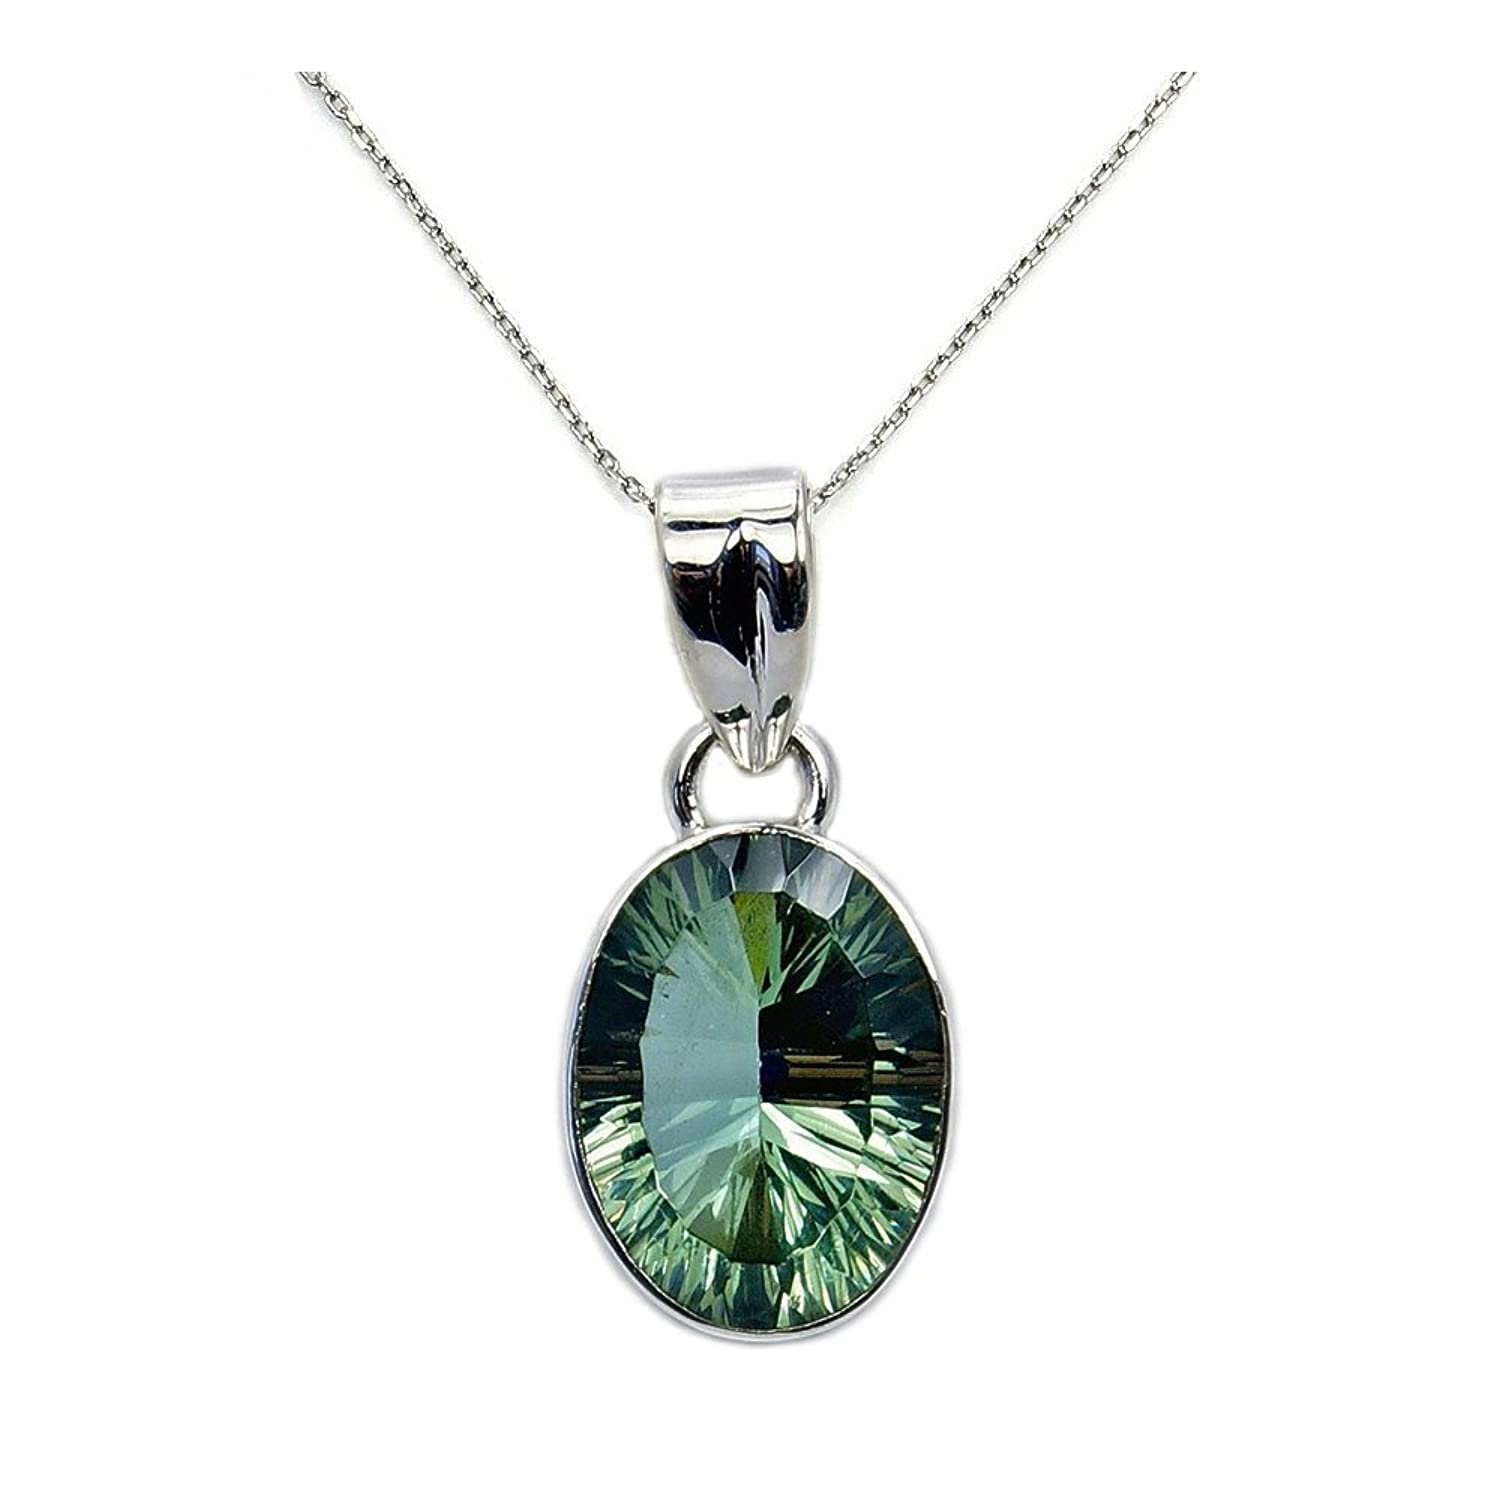 original c pendant q buy jewellery au com from online alexandrite necklace fishpond